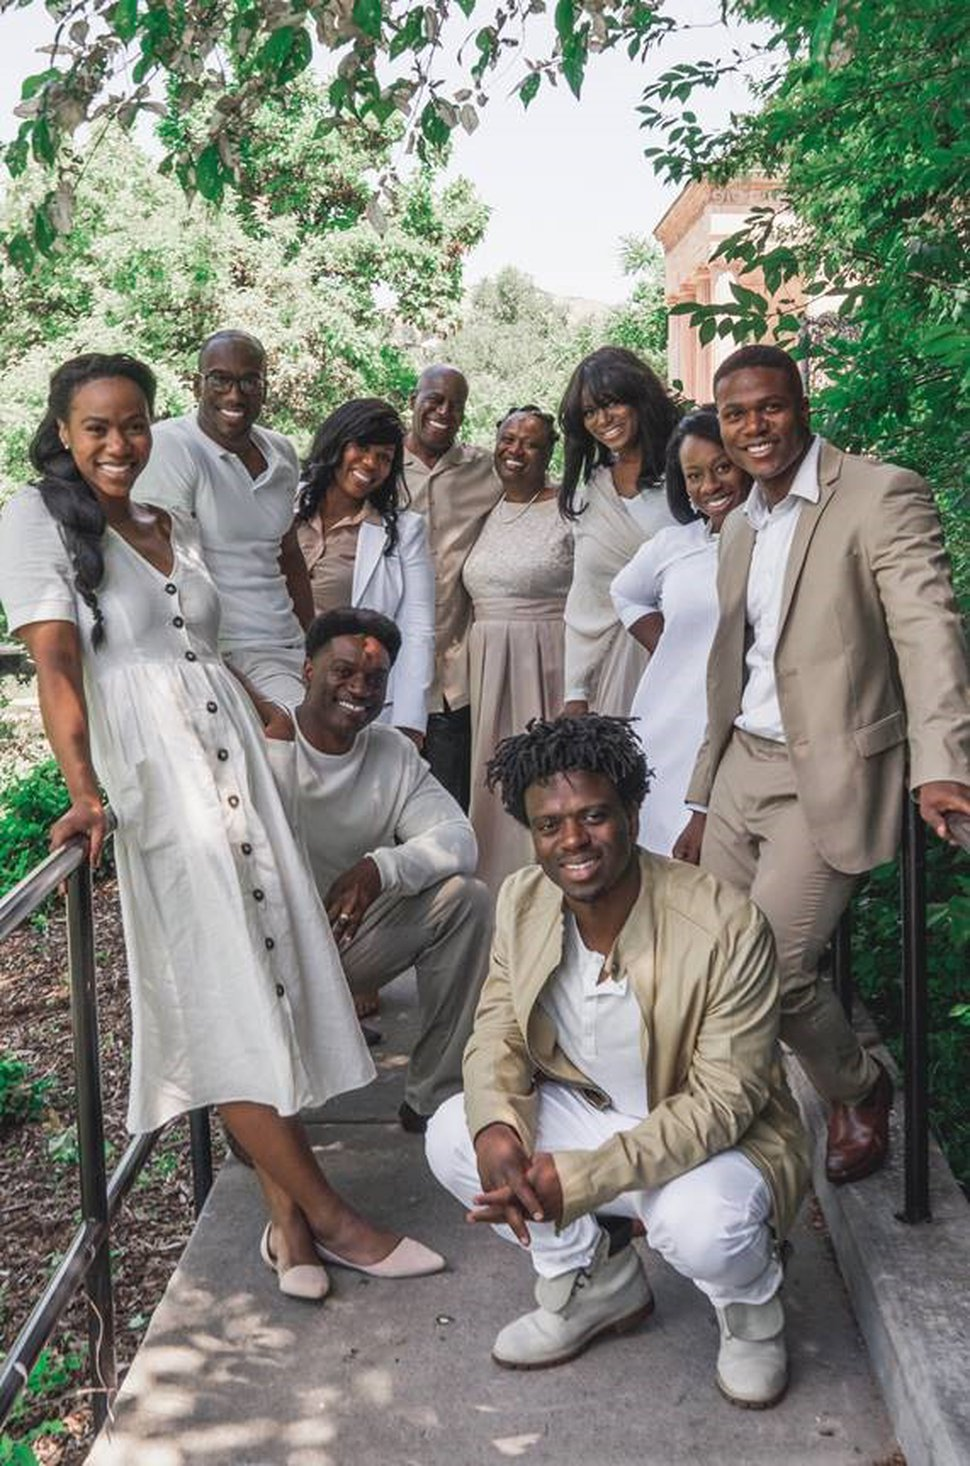 (Photo by Brandon Wilding courtesy of The Church of Jesus Christ of Latter-day Saints) The Bonner Family consists of eight Bonner siblings and their parents, all talented vocalists, who perform and record together.